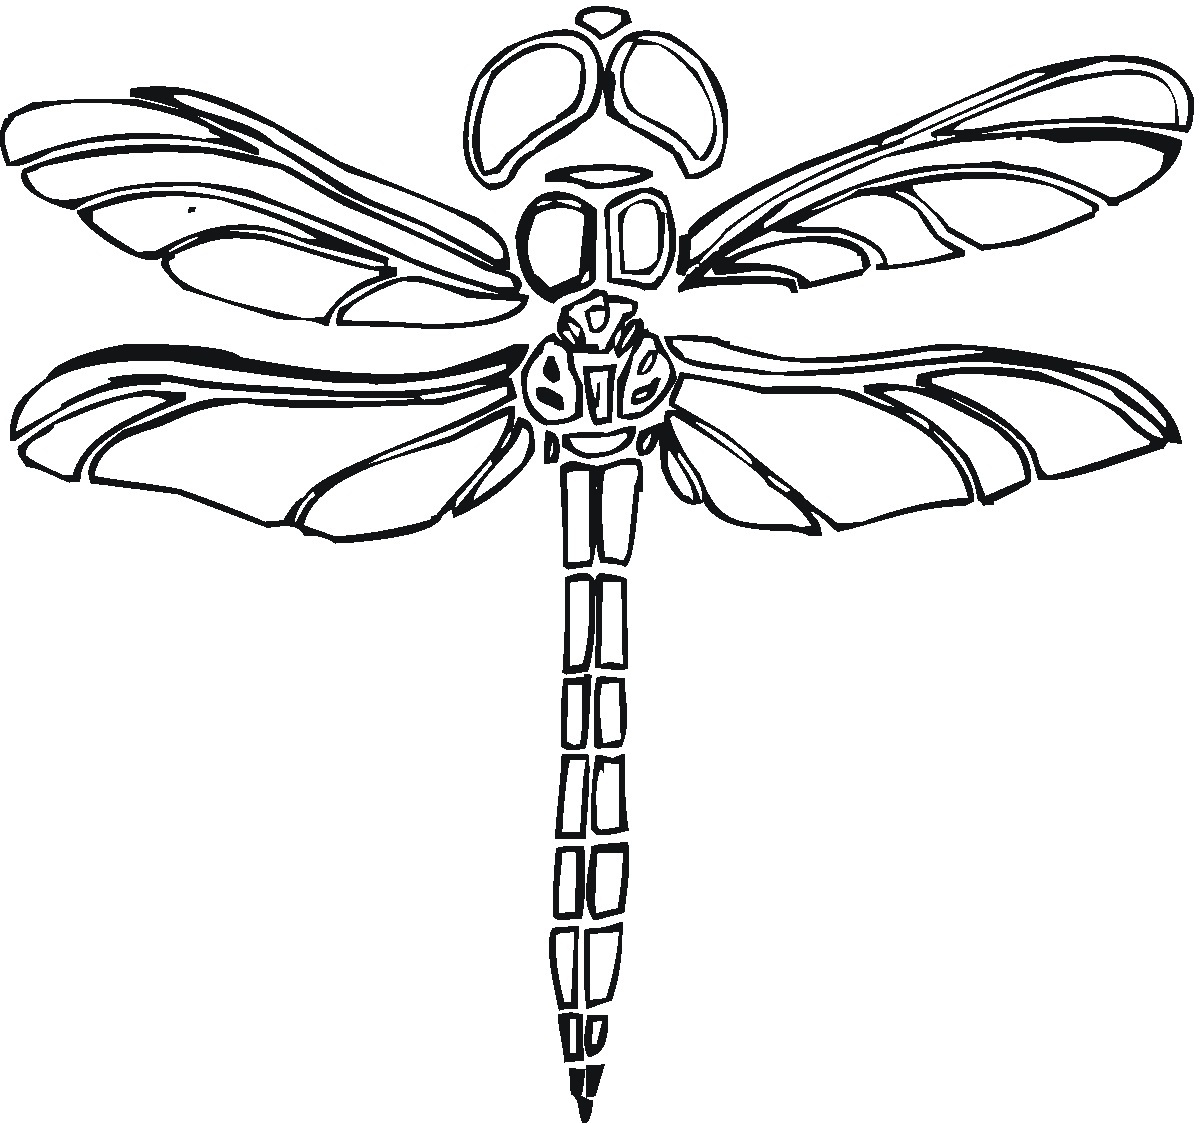 graphic regarding Dragonfly Printable named Printable Dragonfly Coloring Web pages